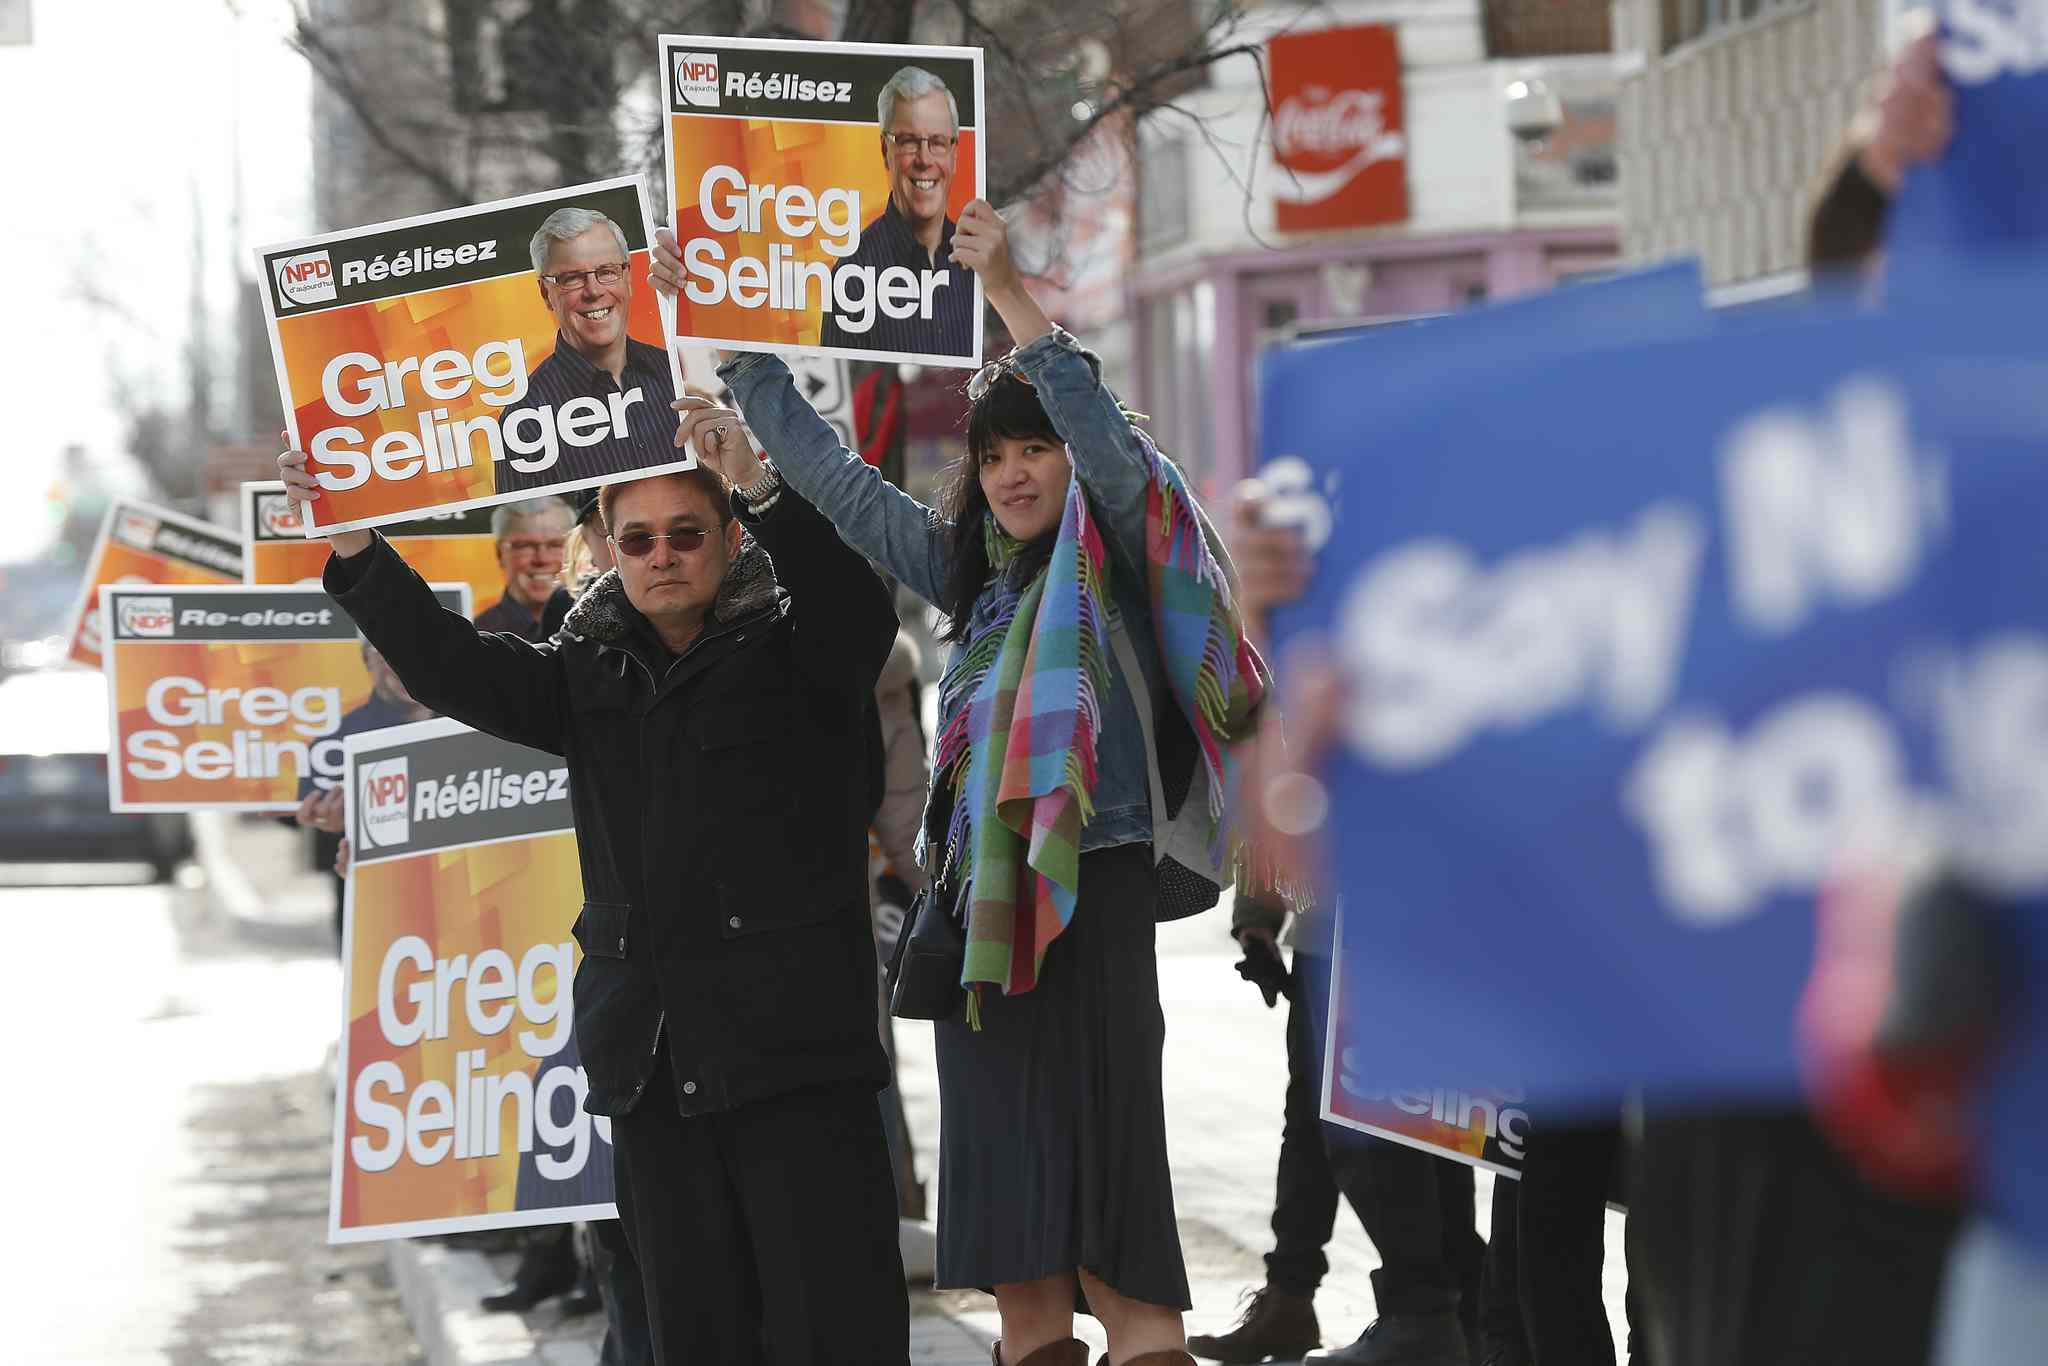 NDP and Tory supporters gather outside the venue for the televised leaders' debate.